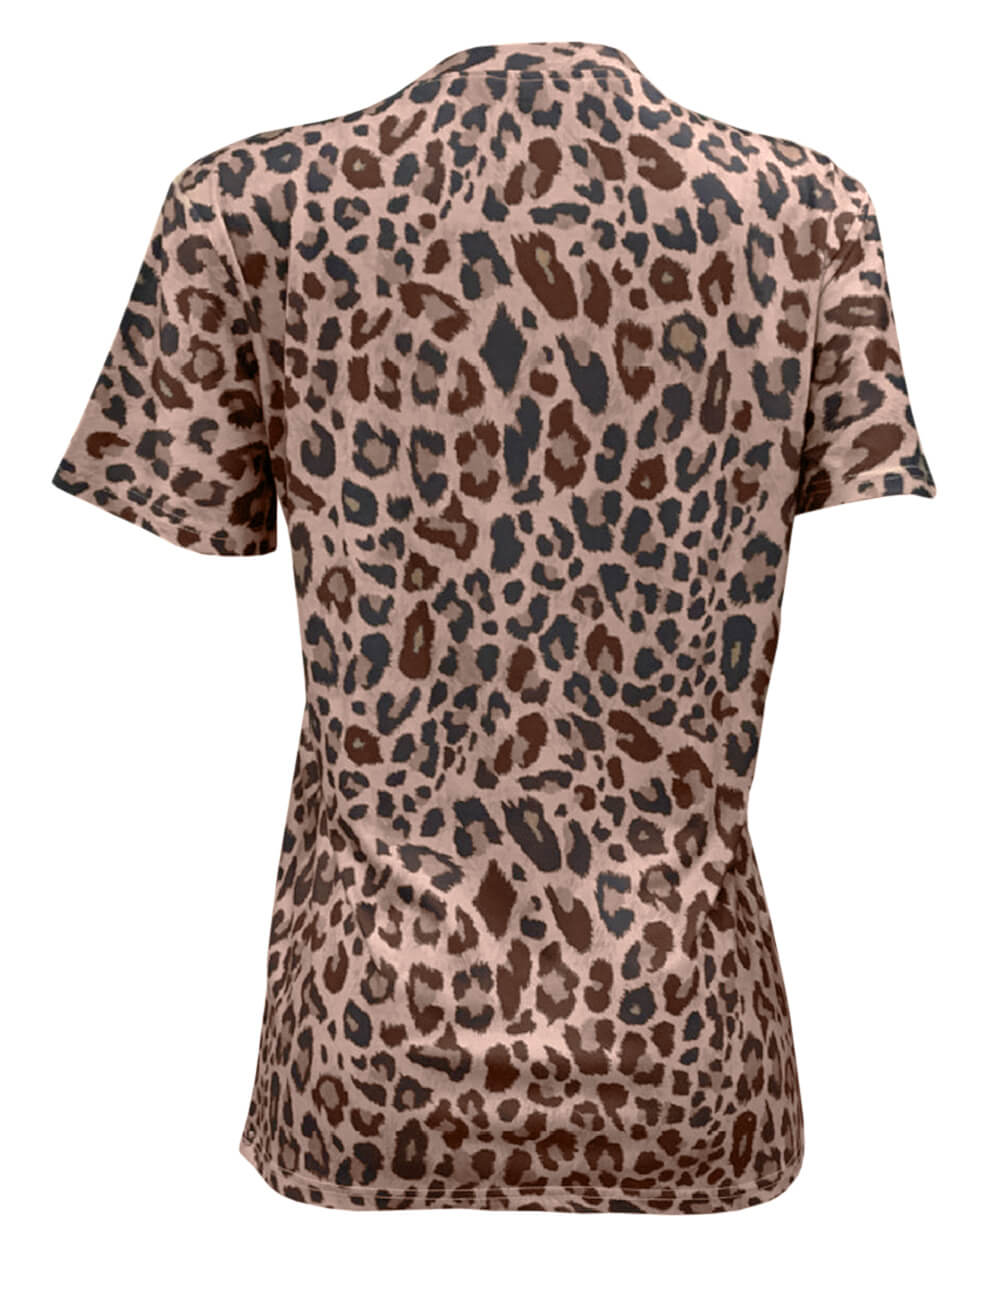 Spring Summer New Women T-Shirt Casual Leopard Print Round Neck Short Sleeve Shirt Ladies Tops Tees Womens Clothing